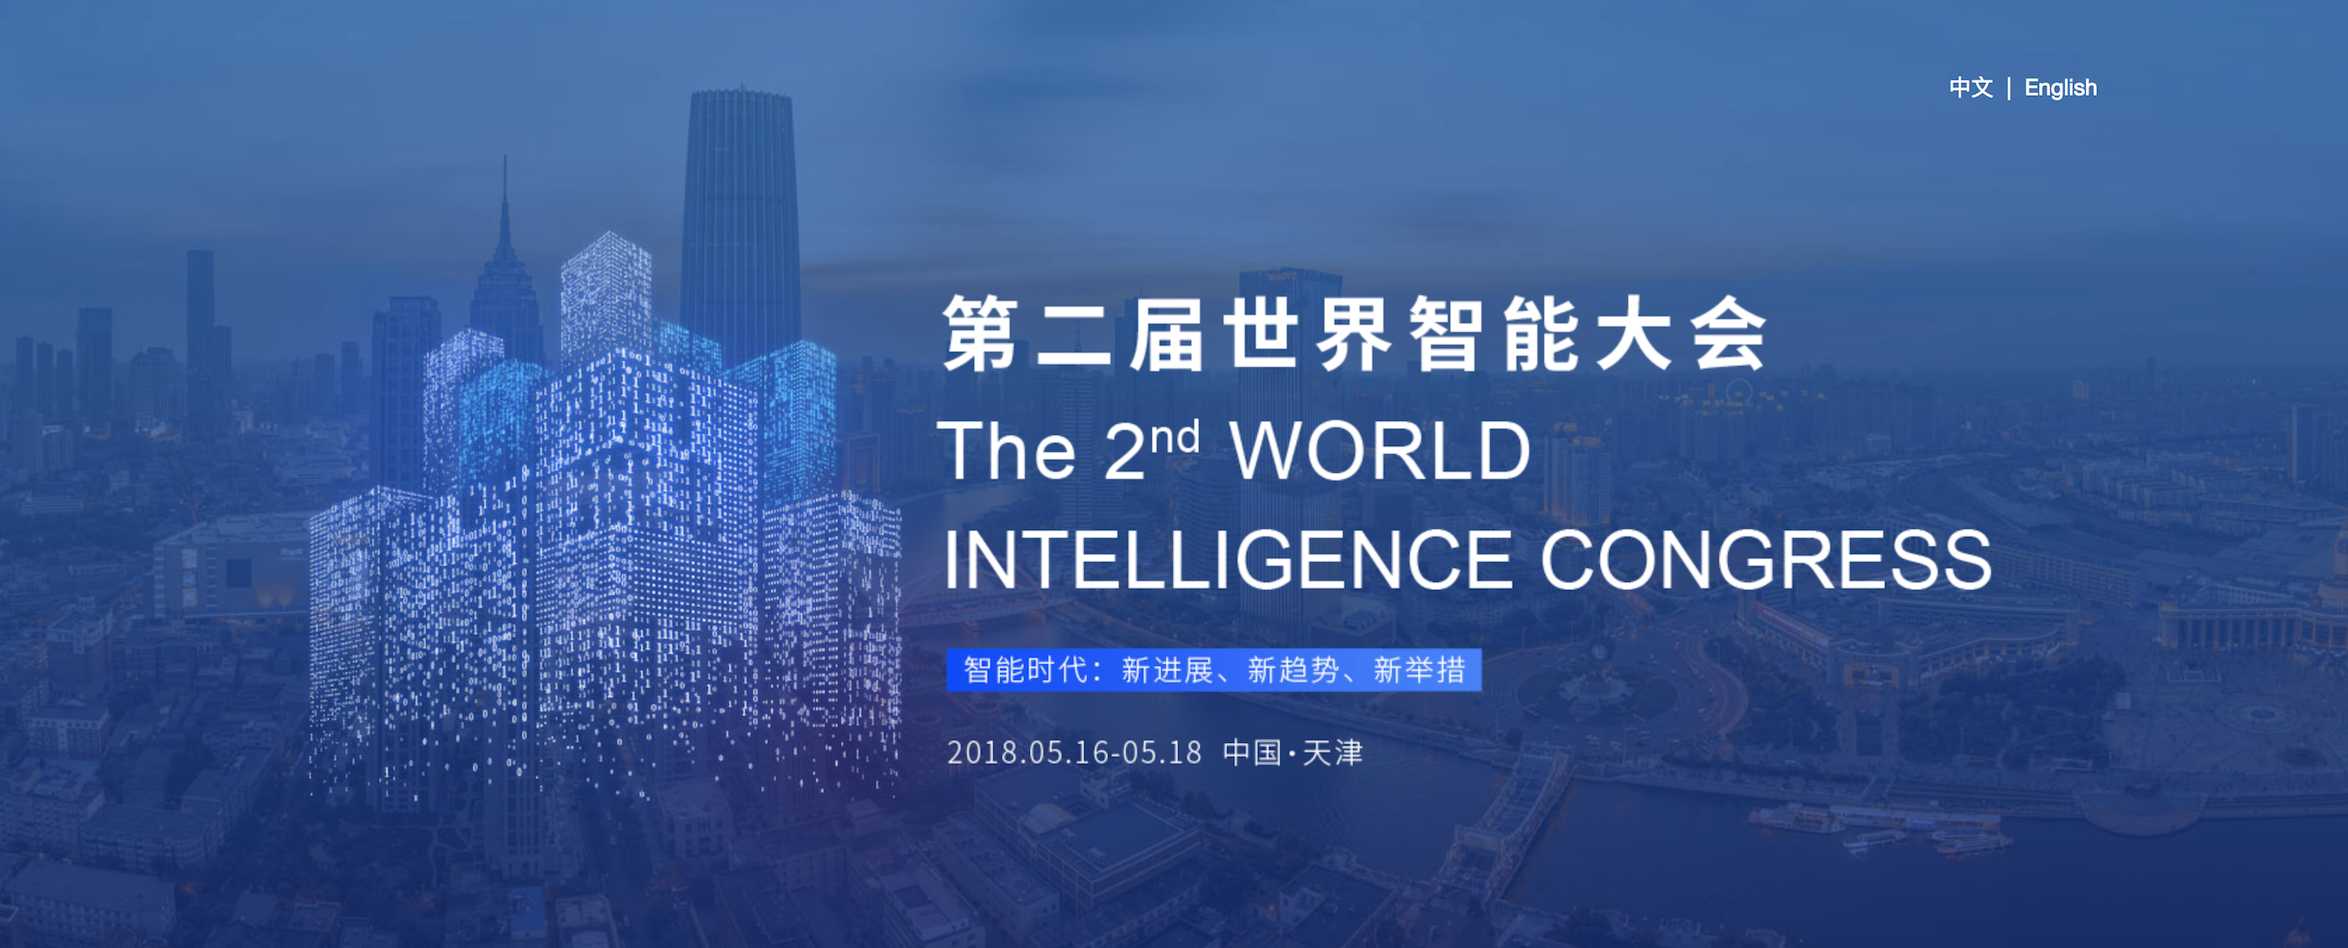 DJI in World Intelligence Congress 2rd,TianJin,China.